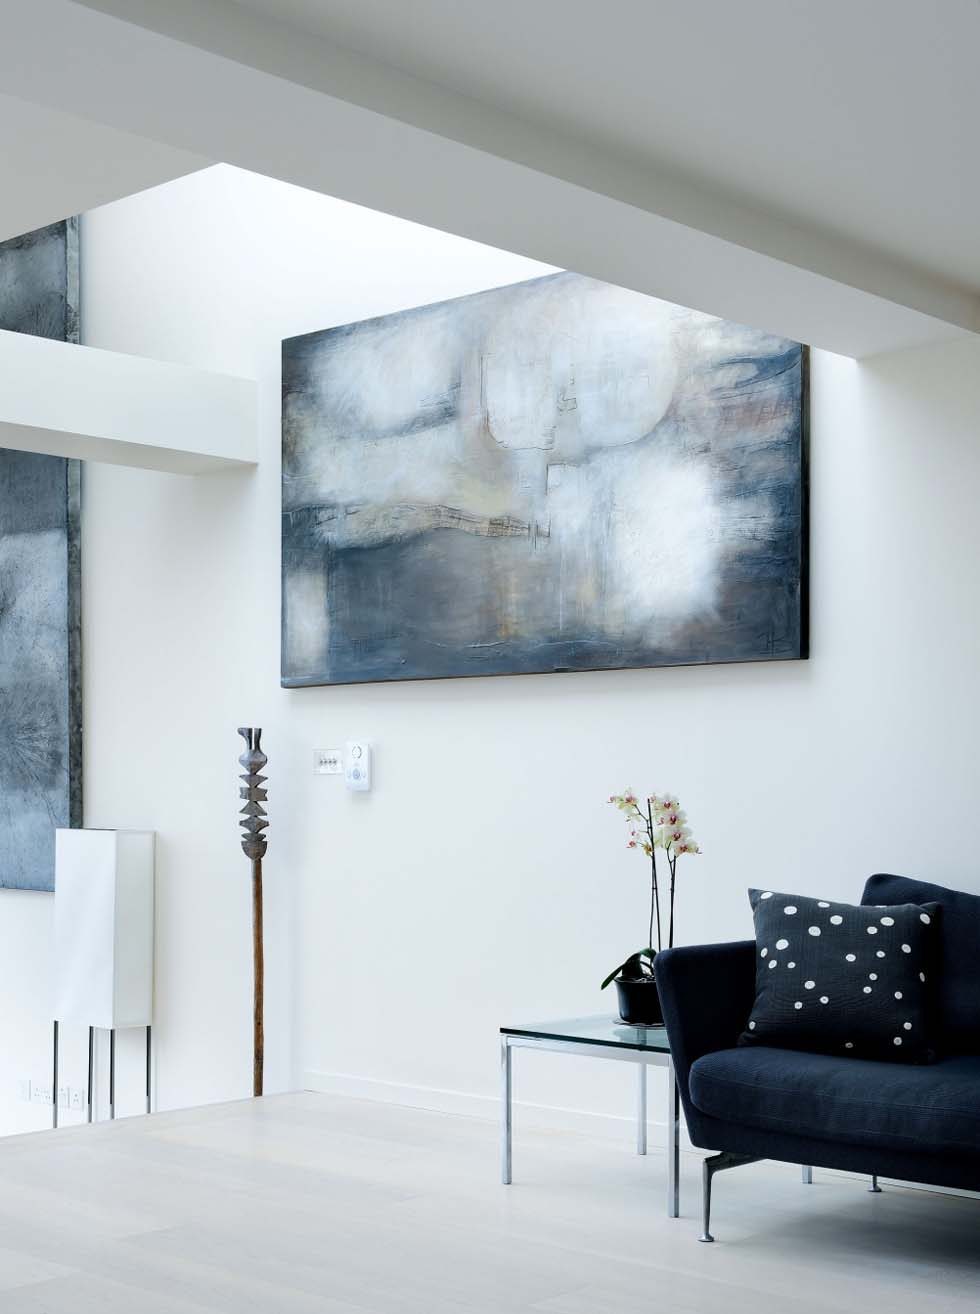 A painting acts as a focal point to this seating area